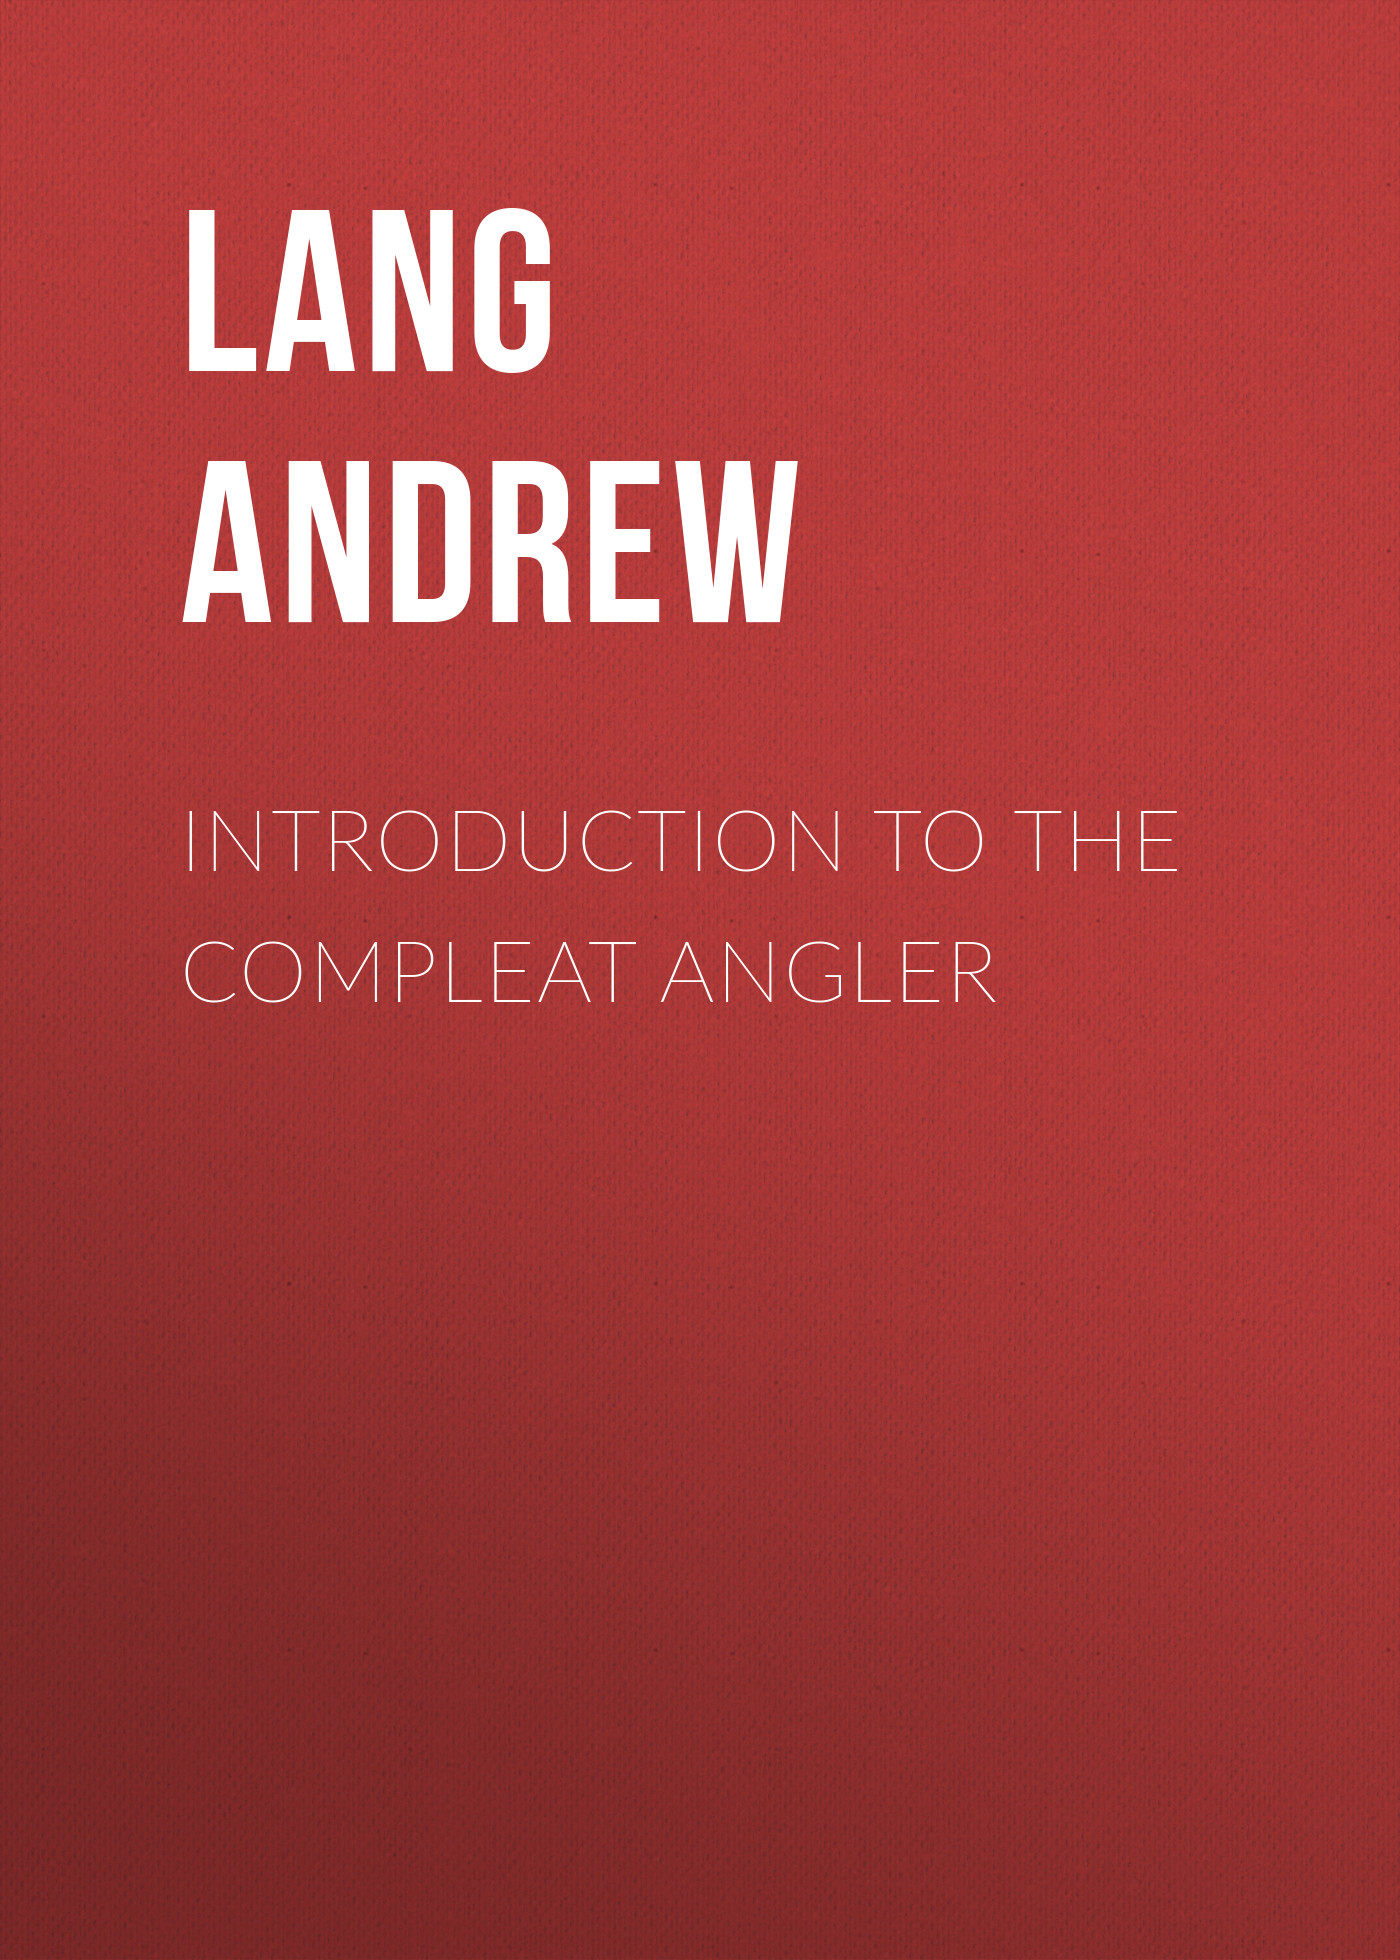 Lang Andrew Introduction to the Compleat Angler спот nowodvorski 6736